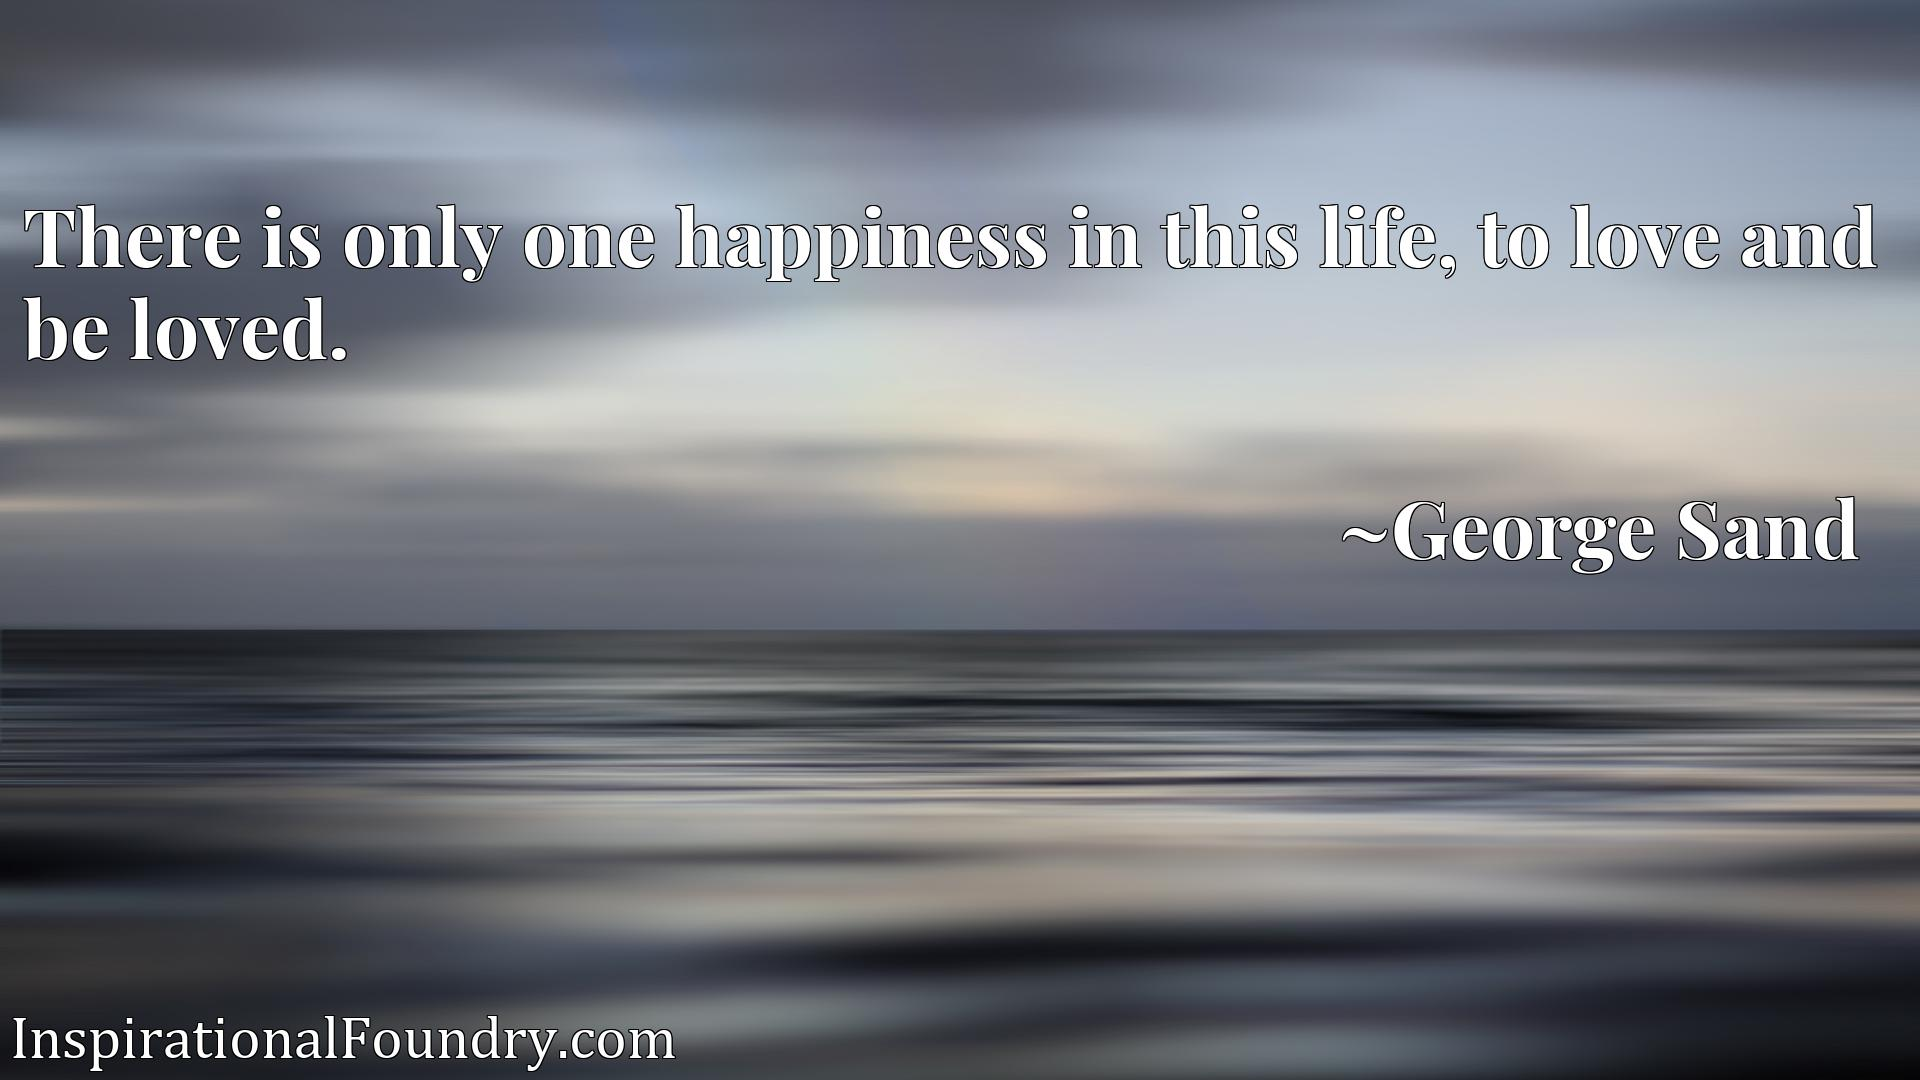 Quote Picture :There is only one happiness in this life, to love and be loved.